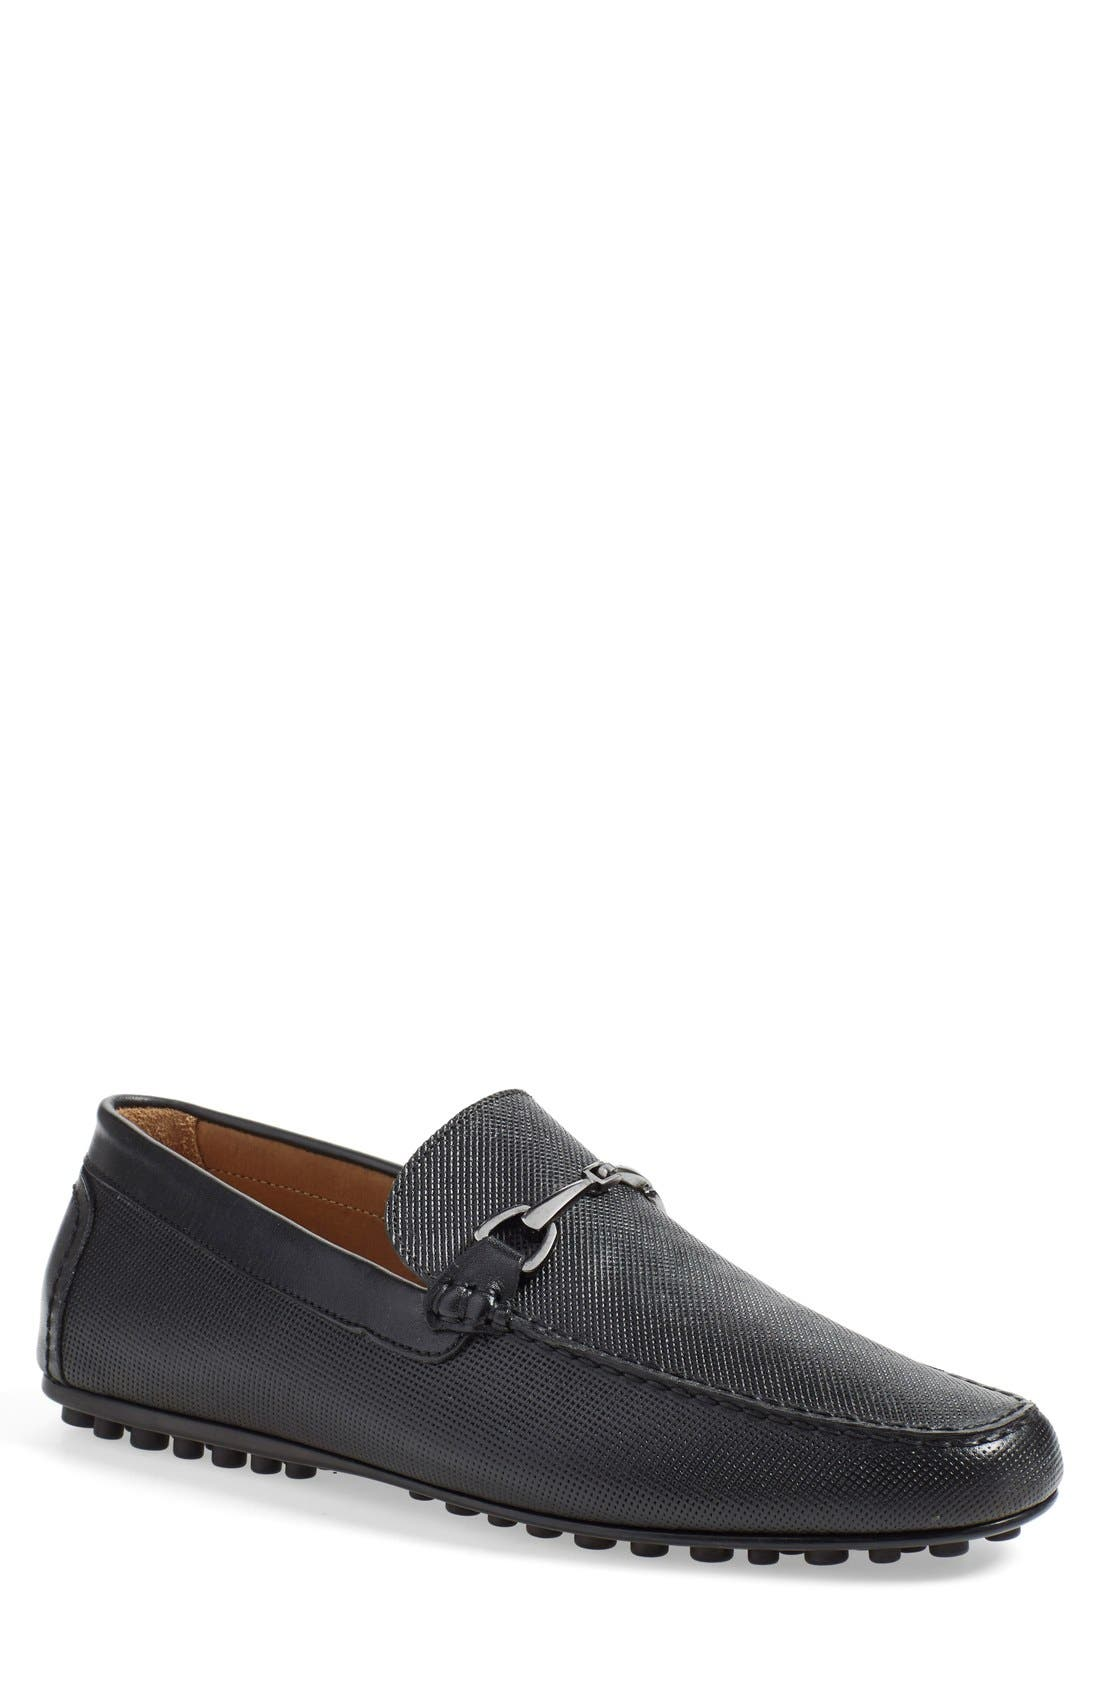 Main Image - John W. Nordstrom® 'Arco' Driving Shoe (Men)